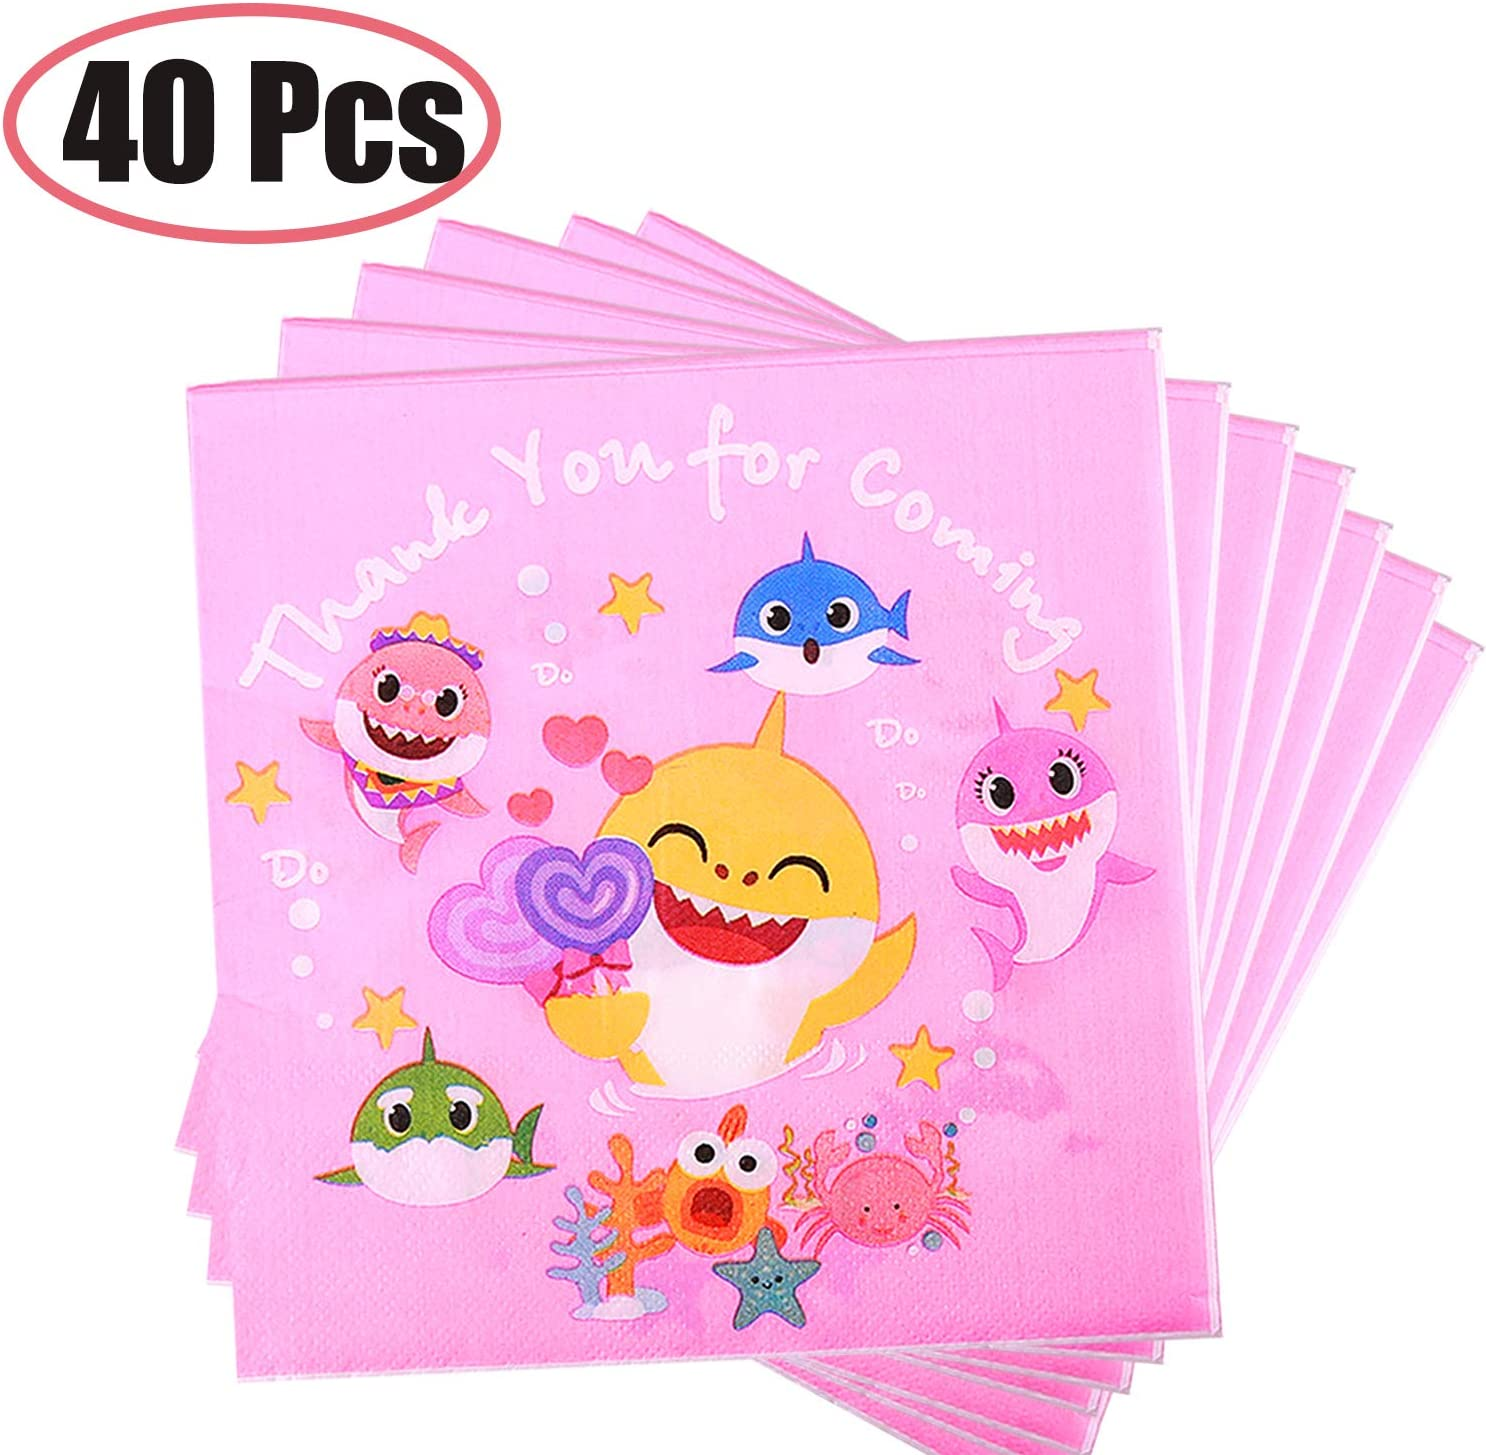 40 Pcs Baby Cute Napkins, Baby Dessert Tableware Disposable Paper Napkins for Baby Shower Kids Birthday Party Decorations Supplies (Pink)